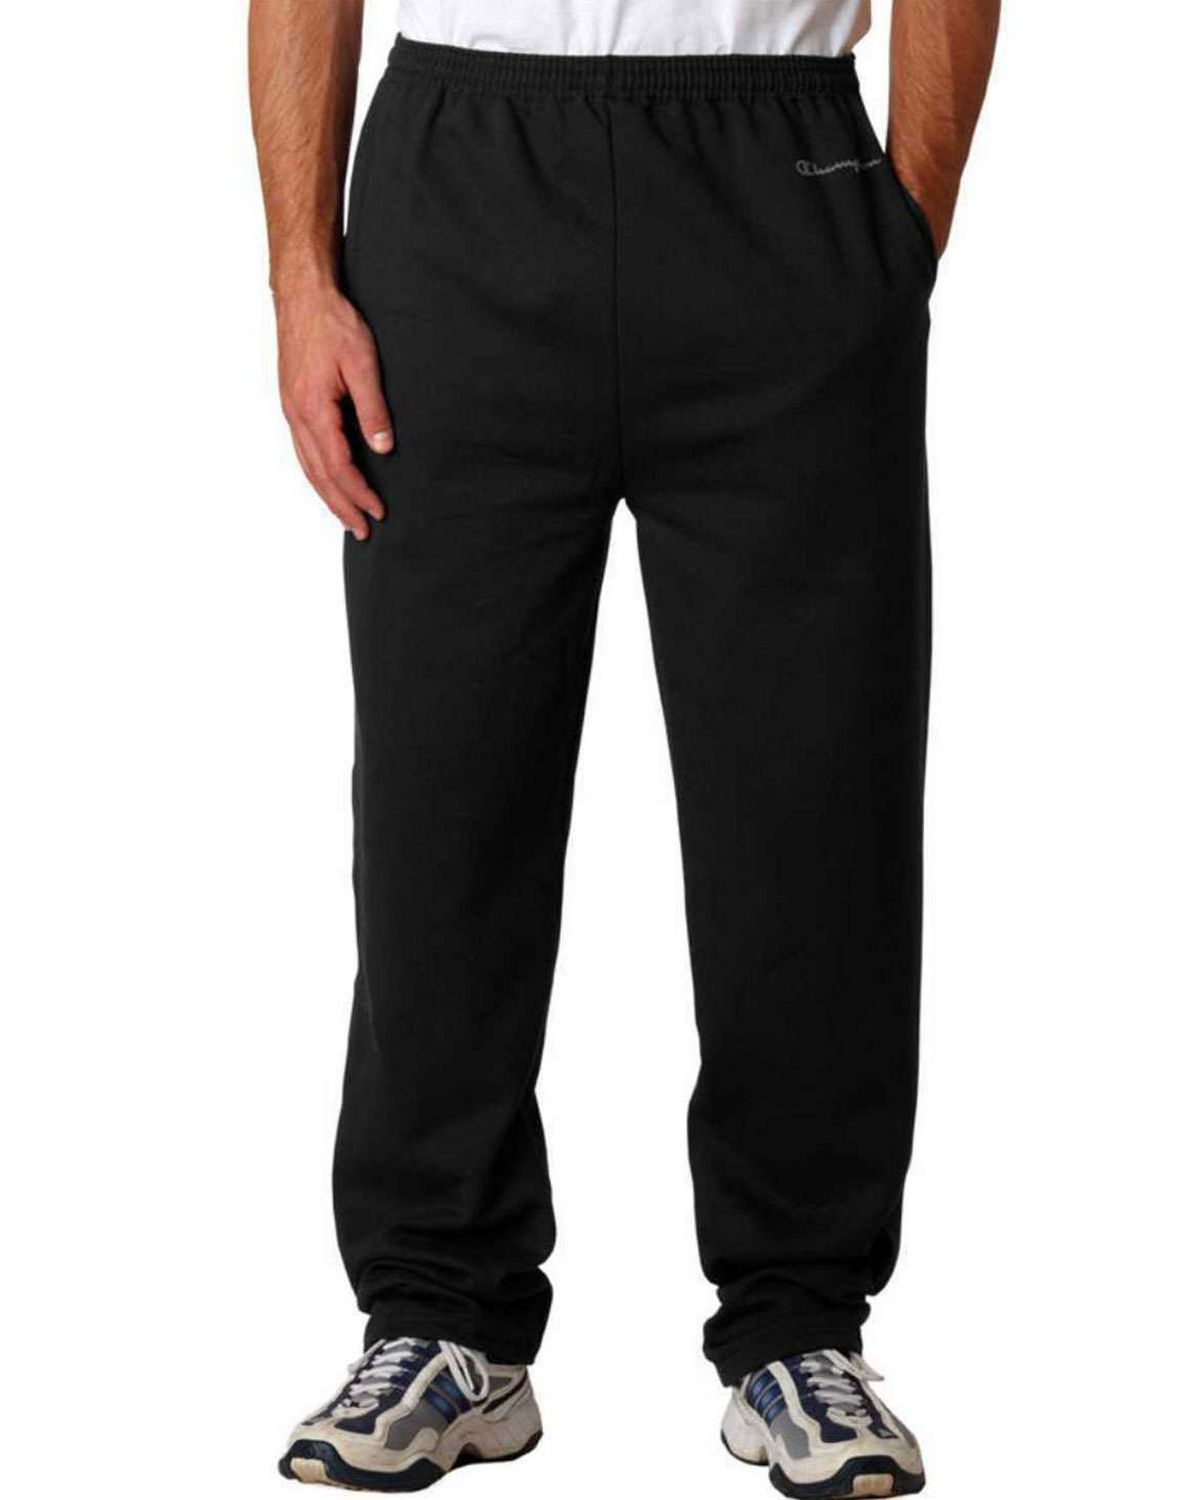 Champion S245 CH Open Bottom Pant - Navy - XL S245